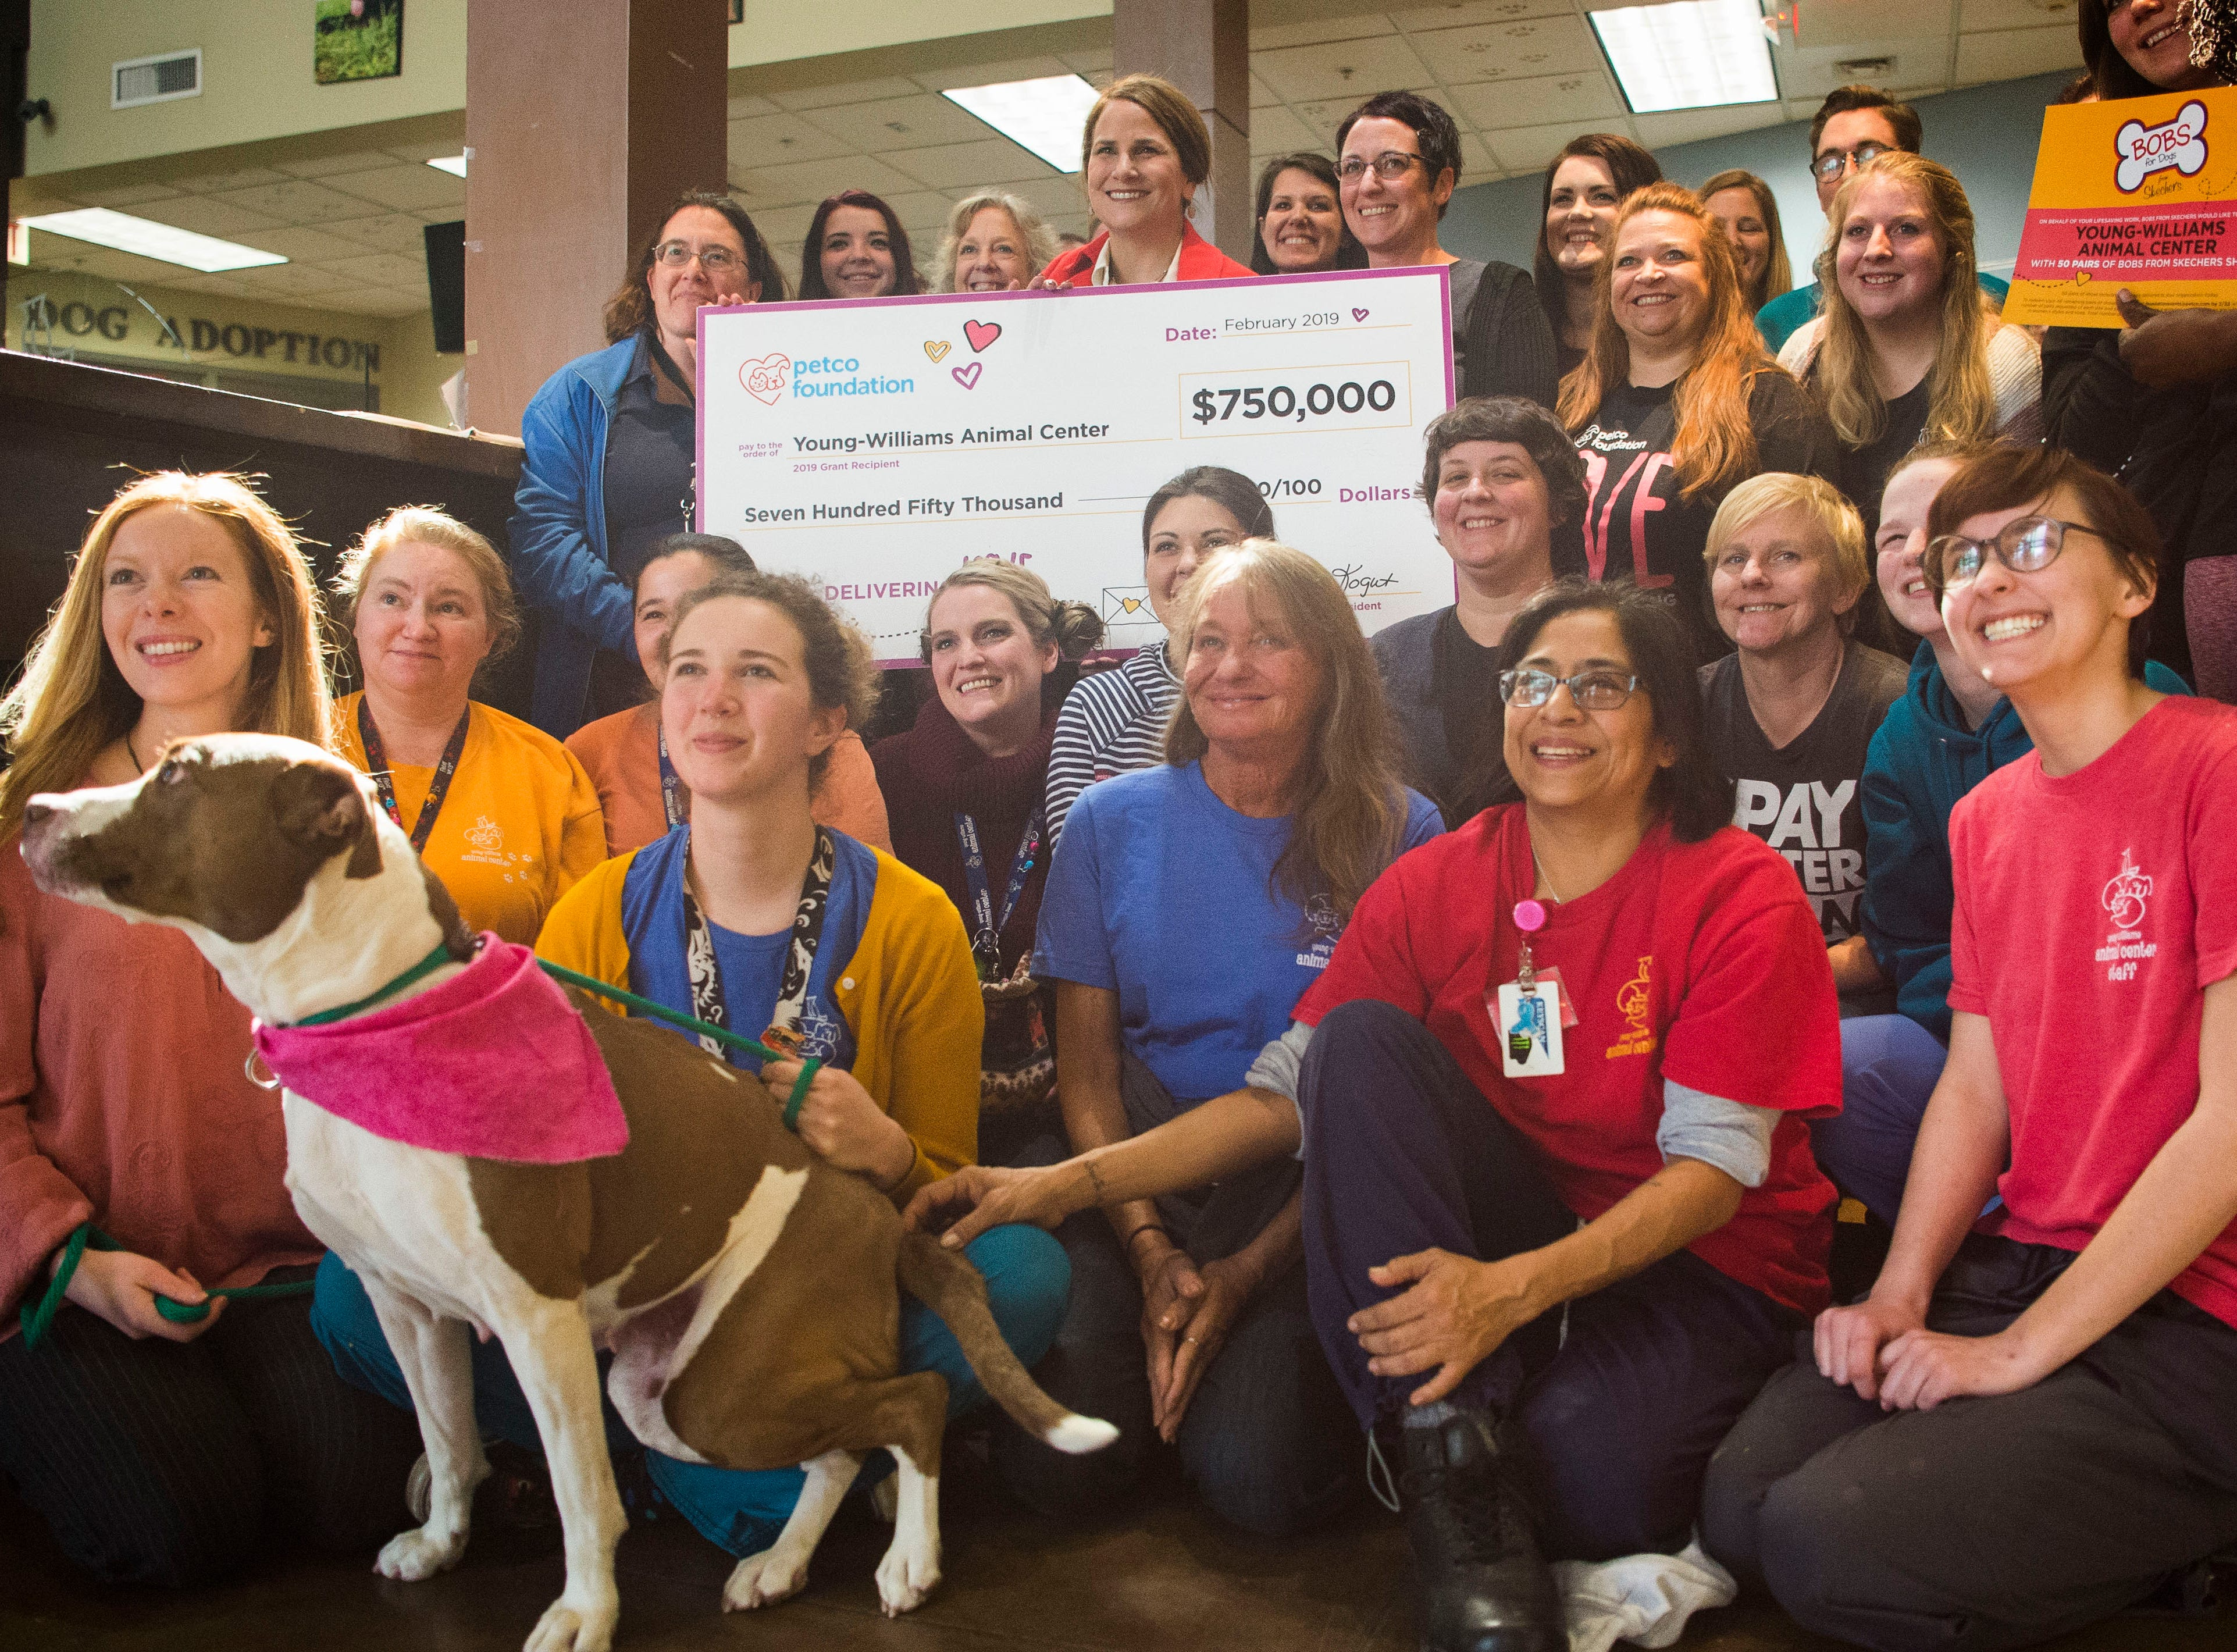 Young-Williams Animal Center employees gather around CEO Janet Testerman after being presented a $750,000 grant from the Petco Foundation, in Knoxville Thursday, Feb. 14, 2019.